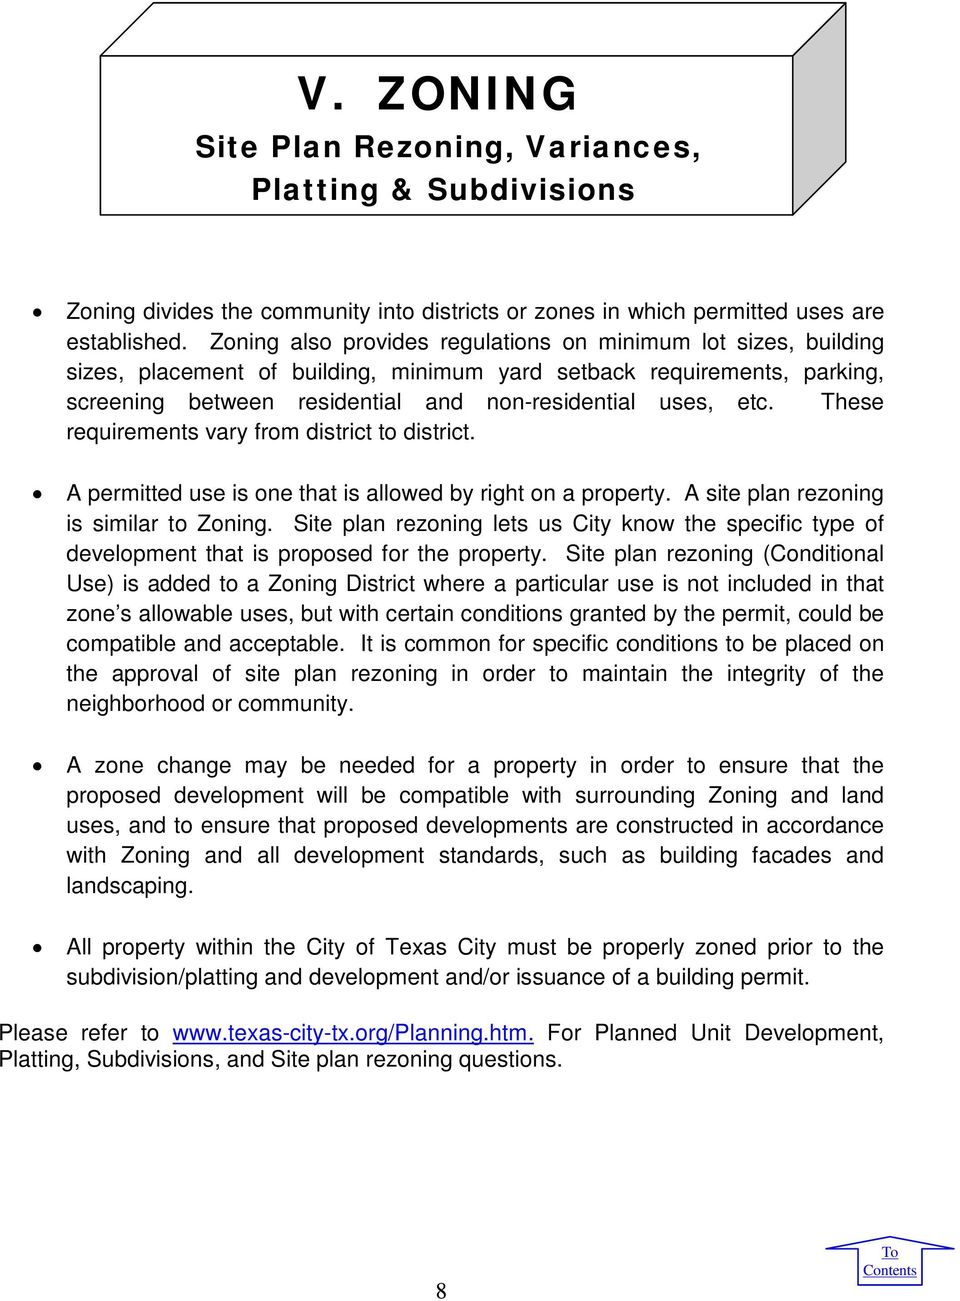 These requirements vary from district to district. A permitted use is one that is allowed by right on a property. A site plan rezoning is similar to Zoning.